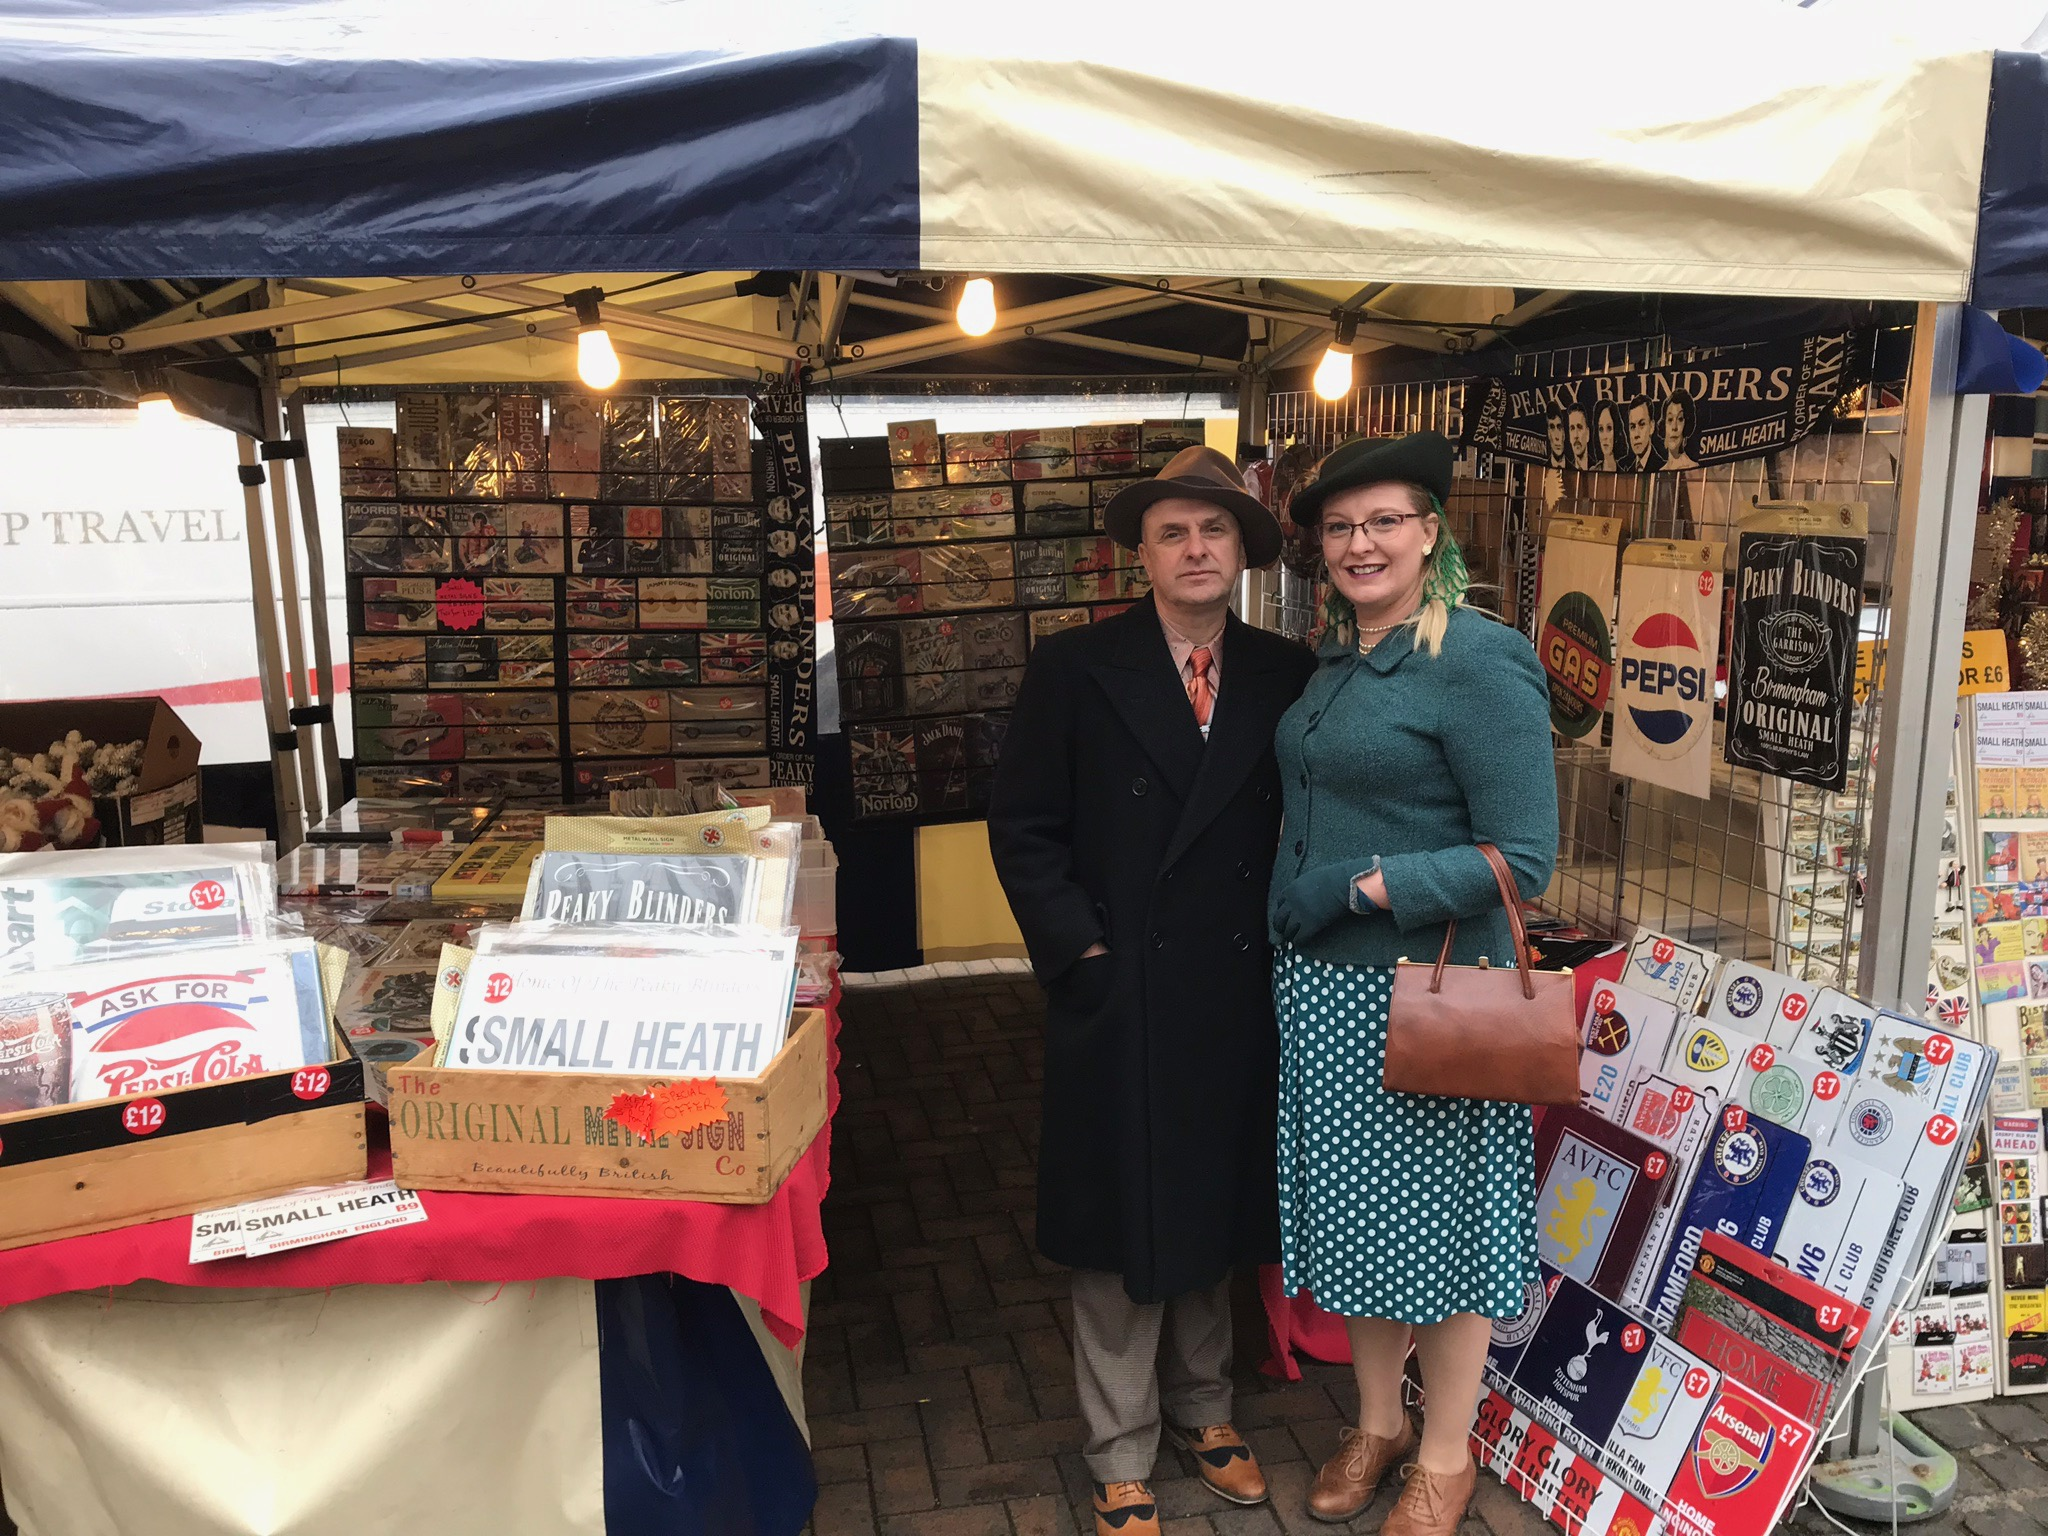 SELLING RETRO PRODUCTS & ATTRACTING RETRO PEOPLE